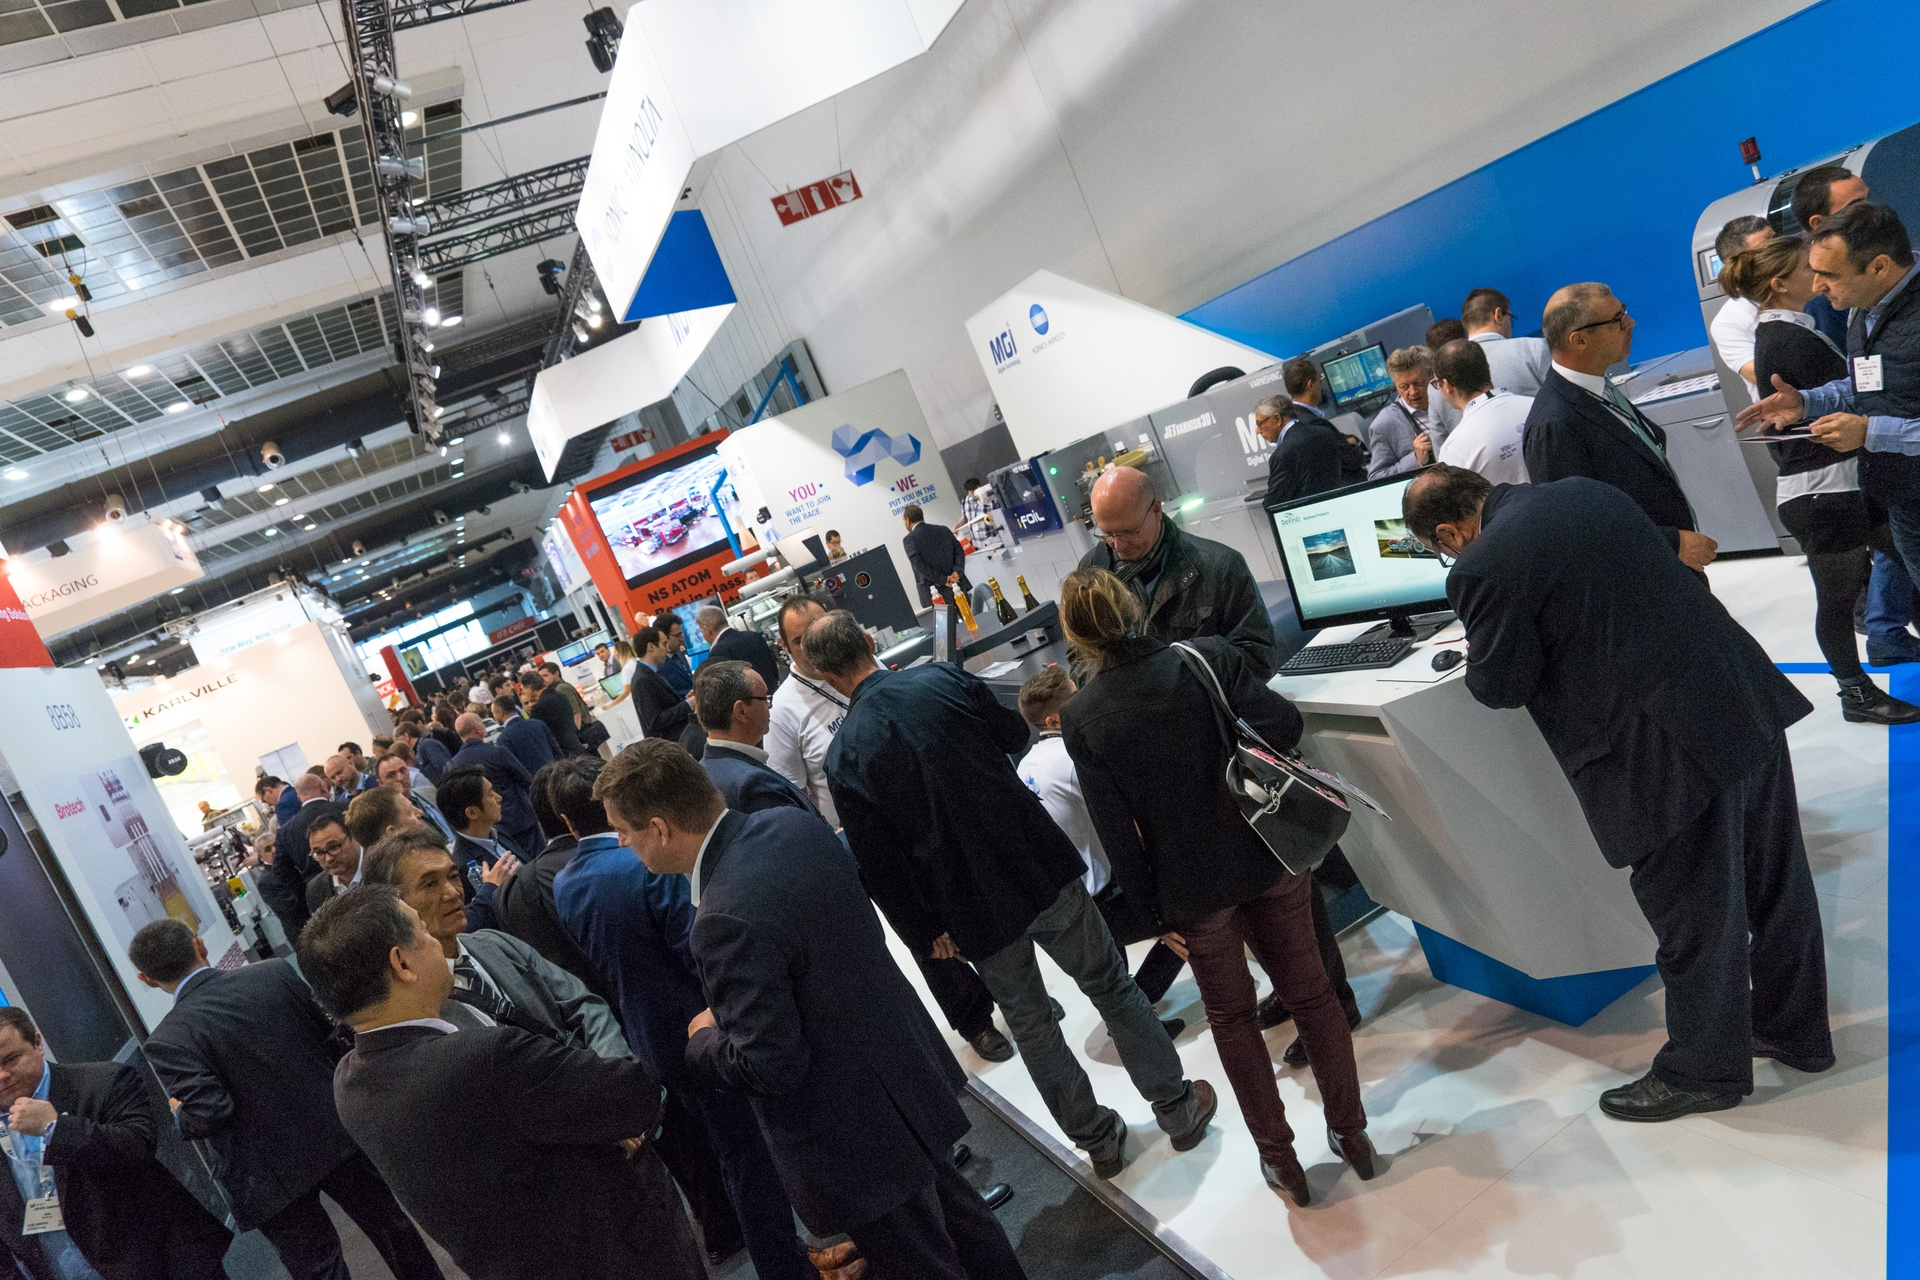 labelexpo-2017-screen-selection-7324-106731-290780.jpg